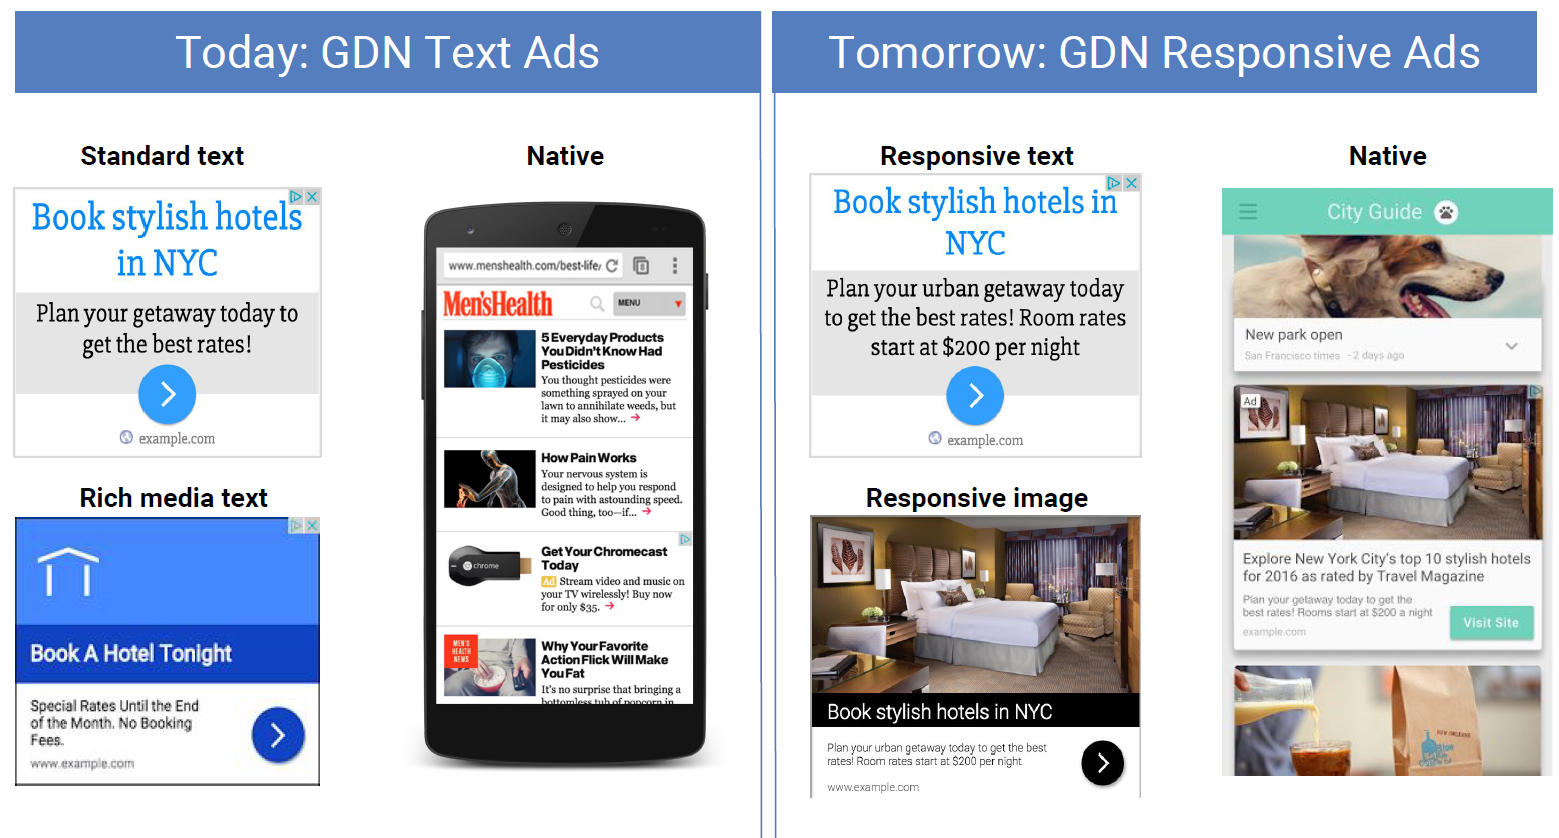 responsive ads on display network